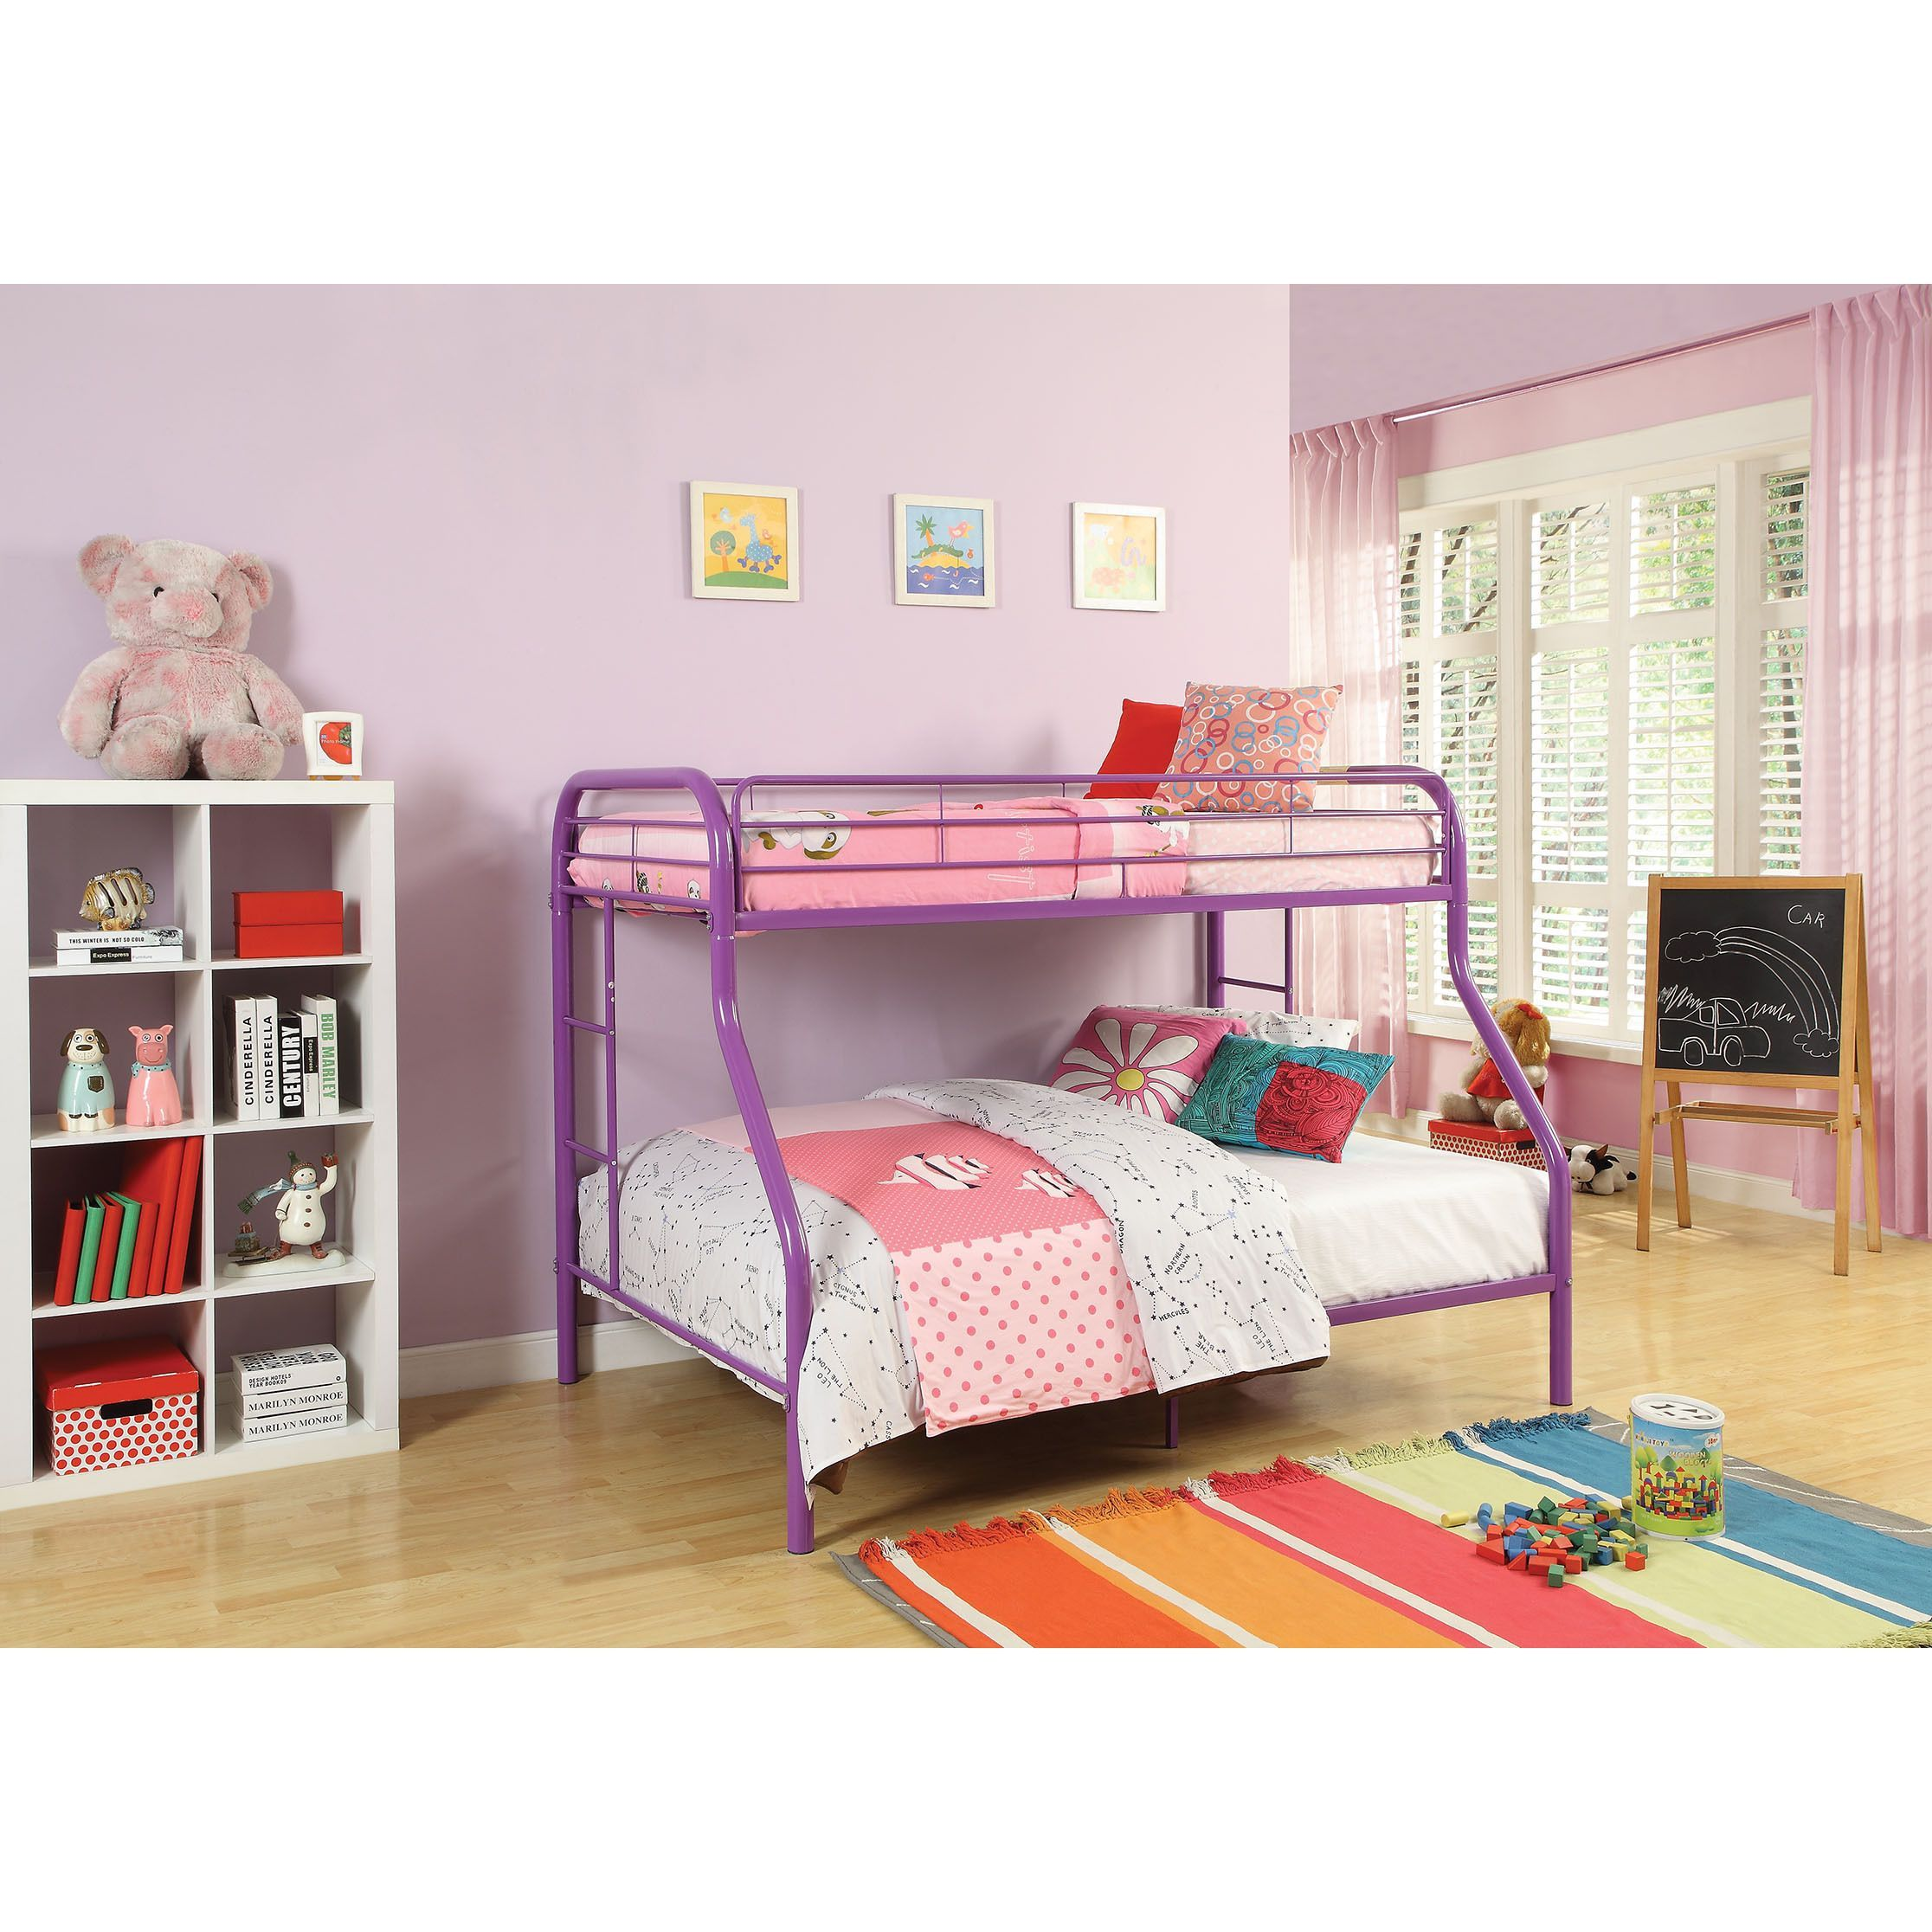 Tritan purple metal twinfull bunk bed purple l x